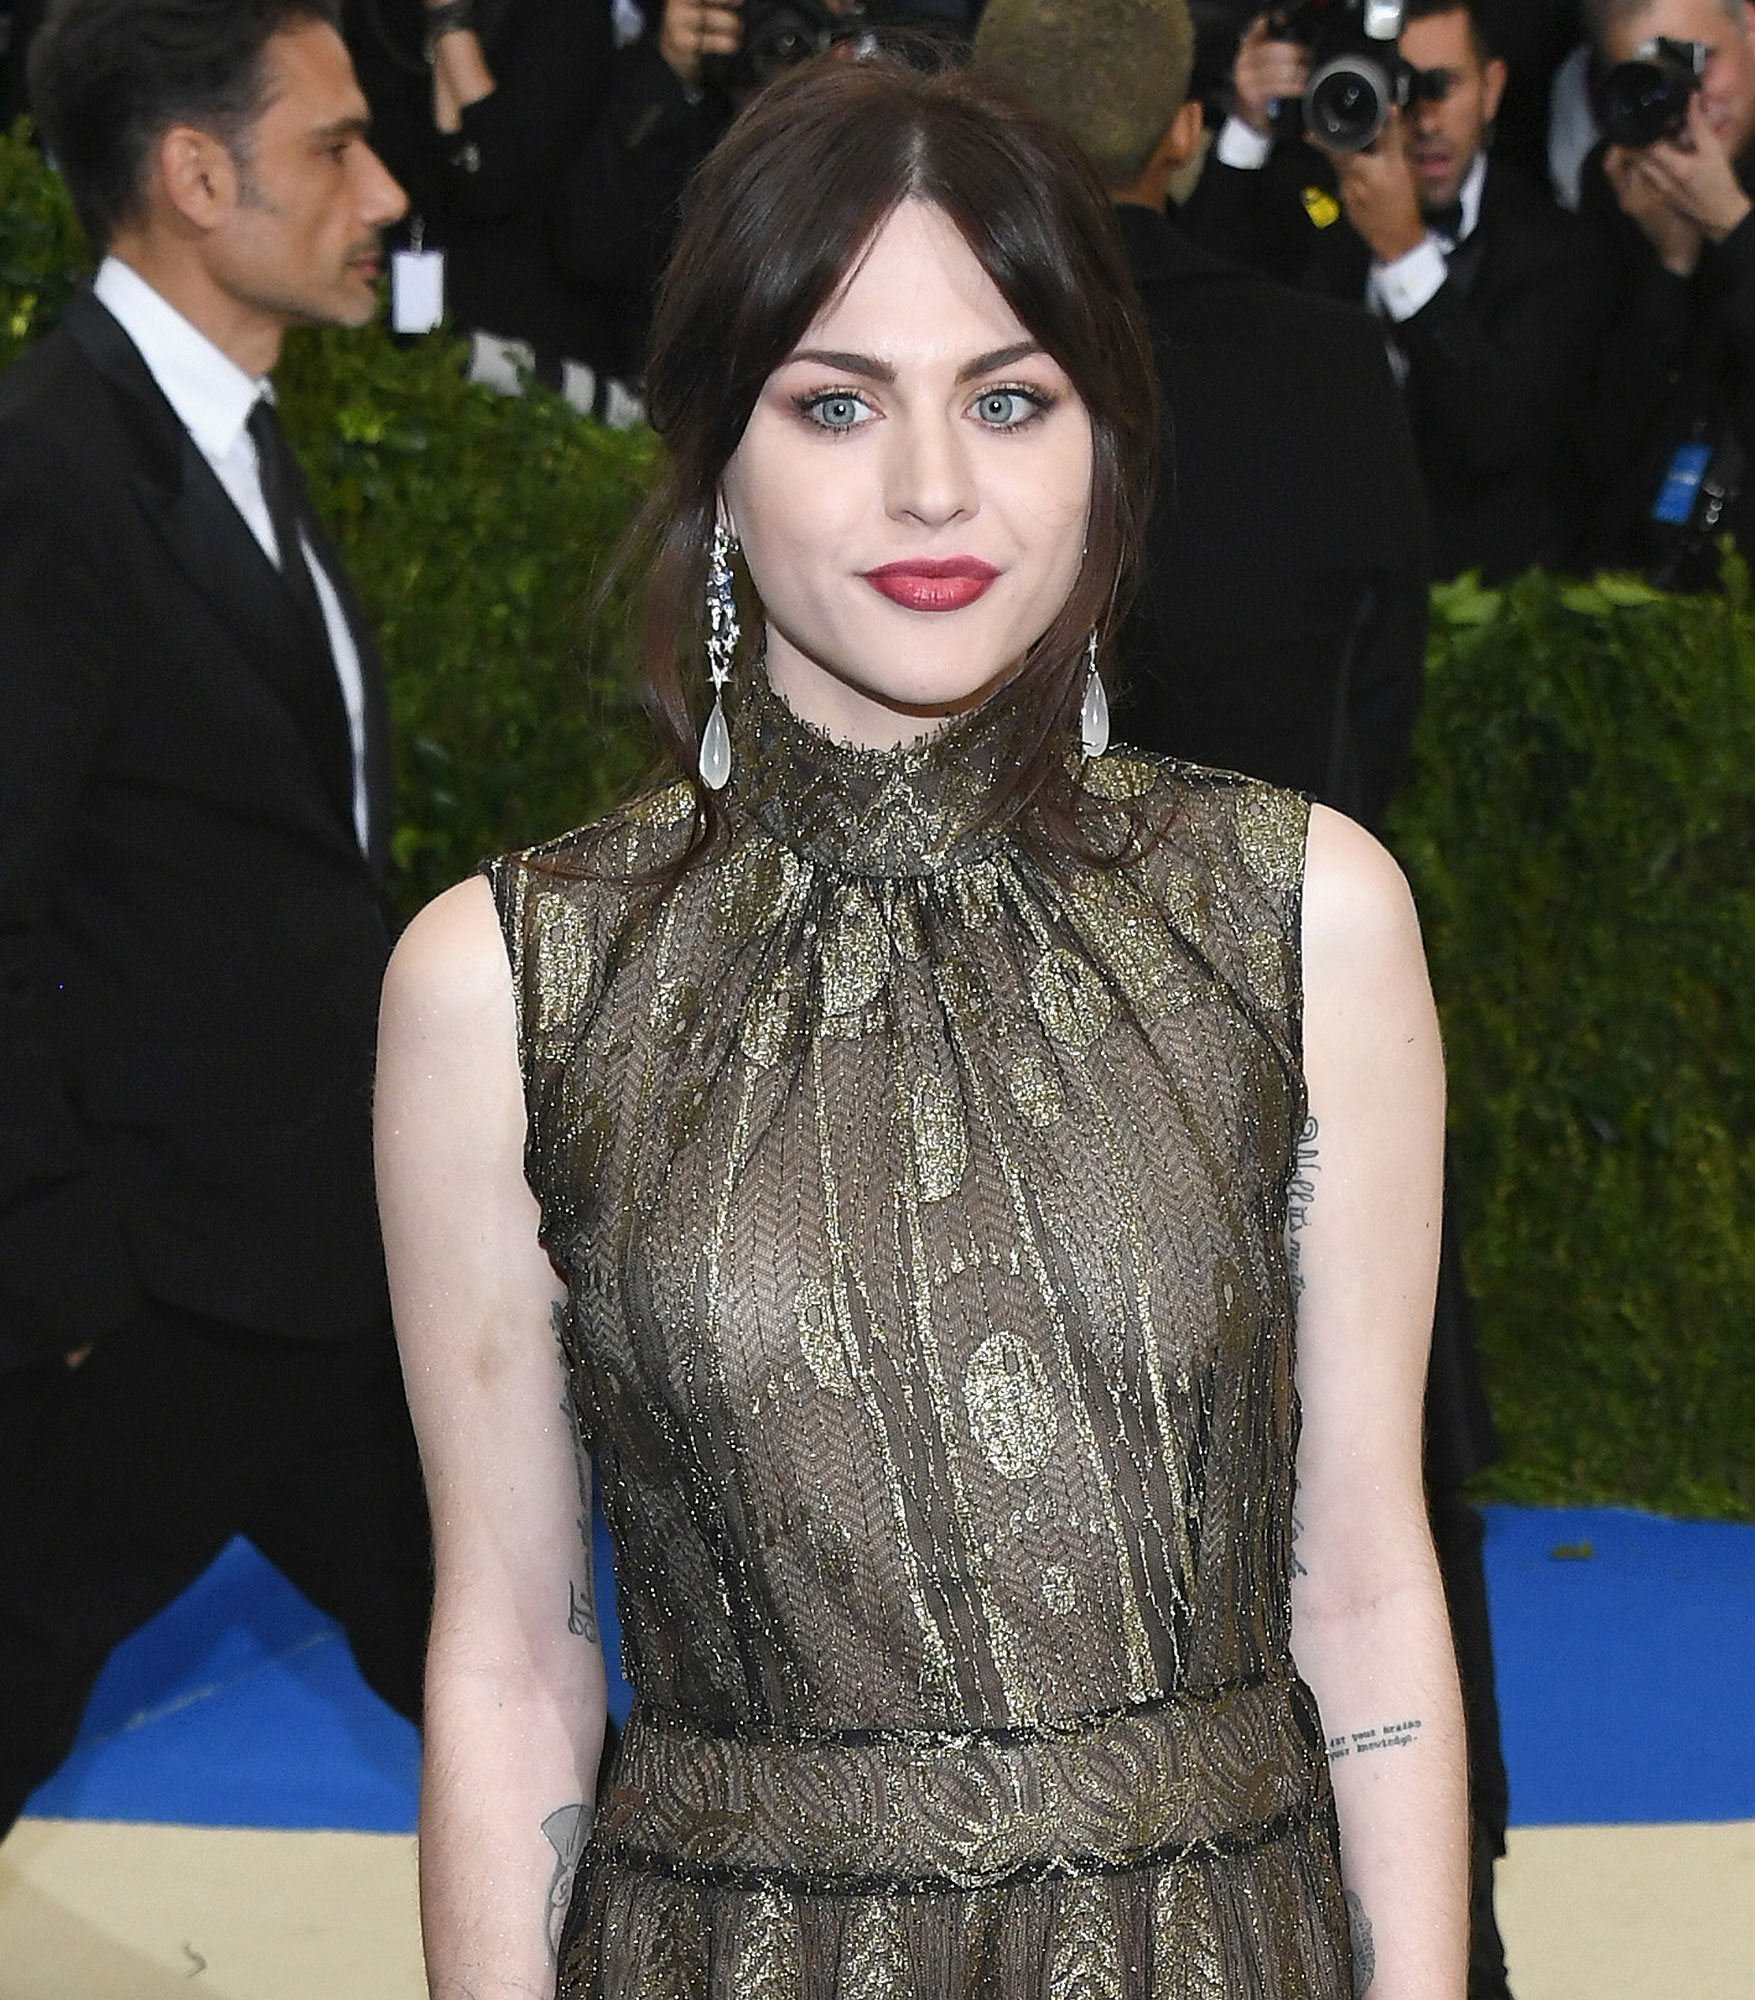 FRANCES BEAN COBAIN ON GETTING SOBER